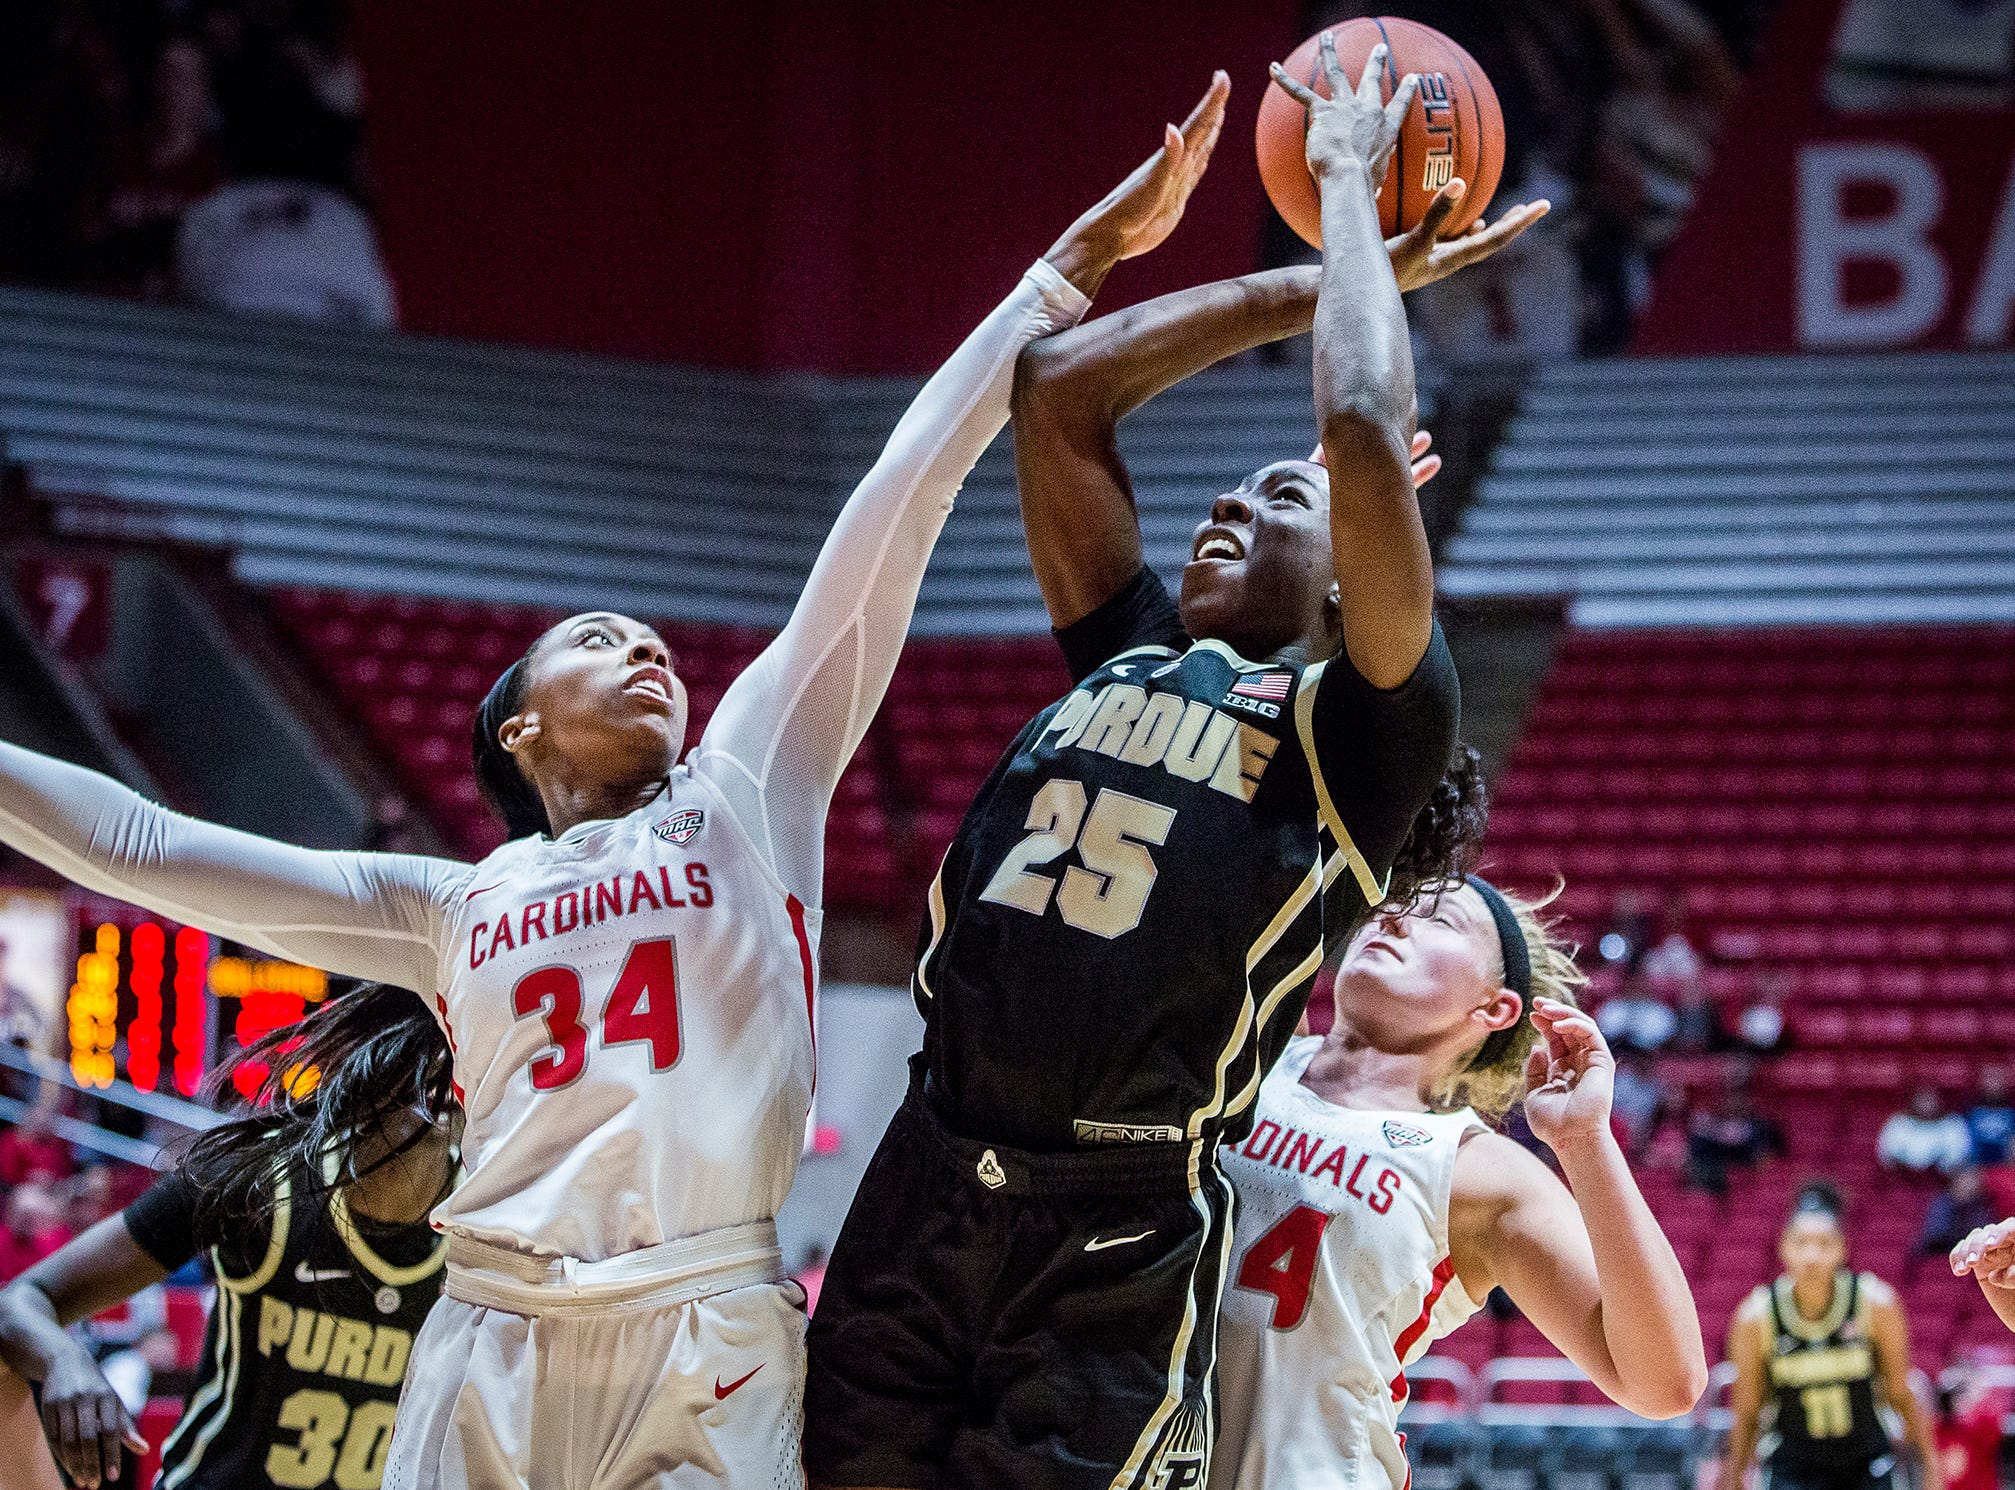 Purdue's Tamara Farquhar shoots past Ball State's defense during their game at Worthen Arena Wednesday, Nov. 7, 2018.